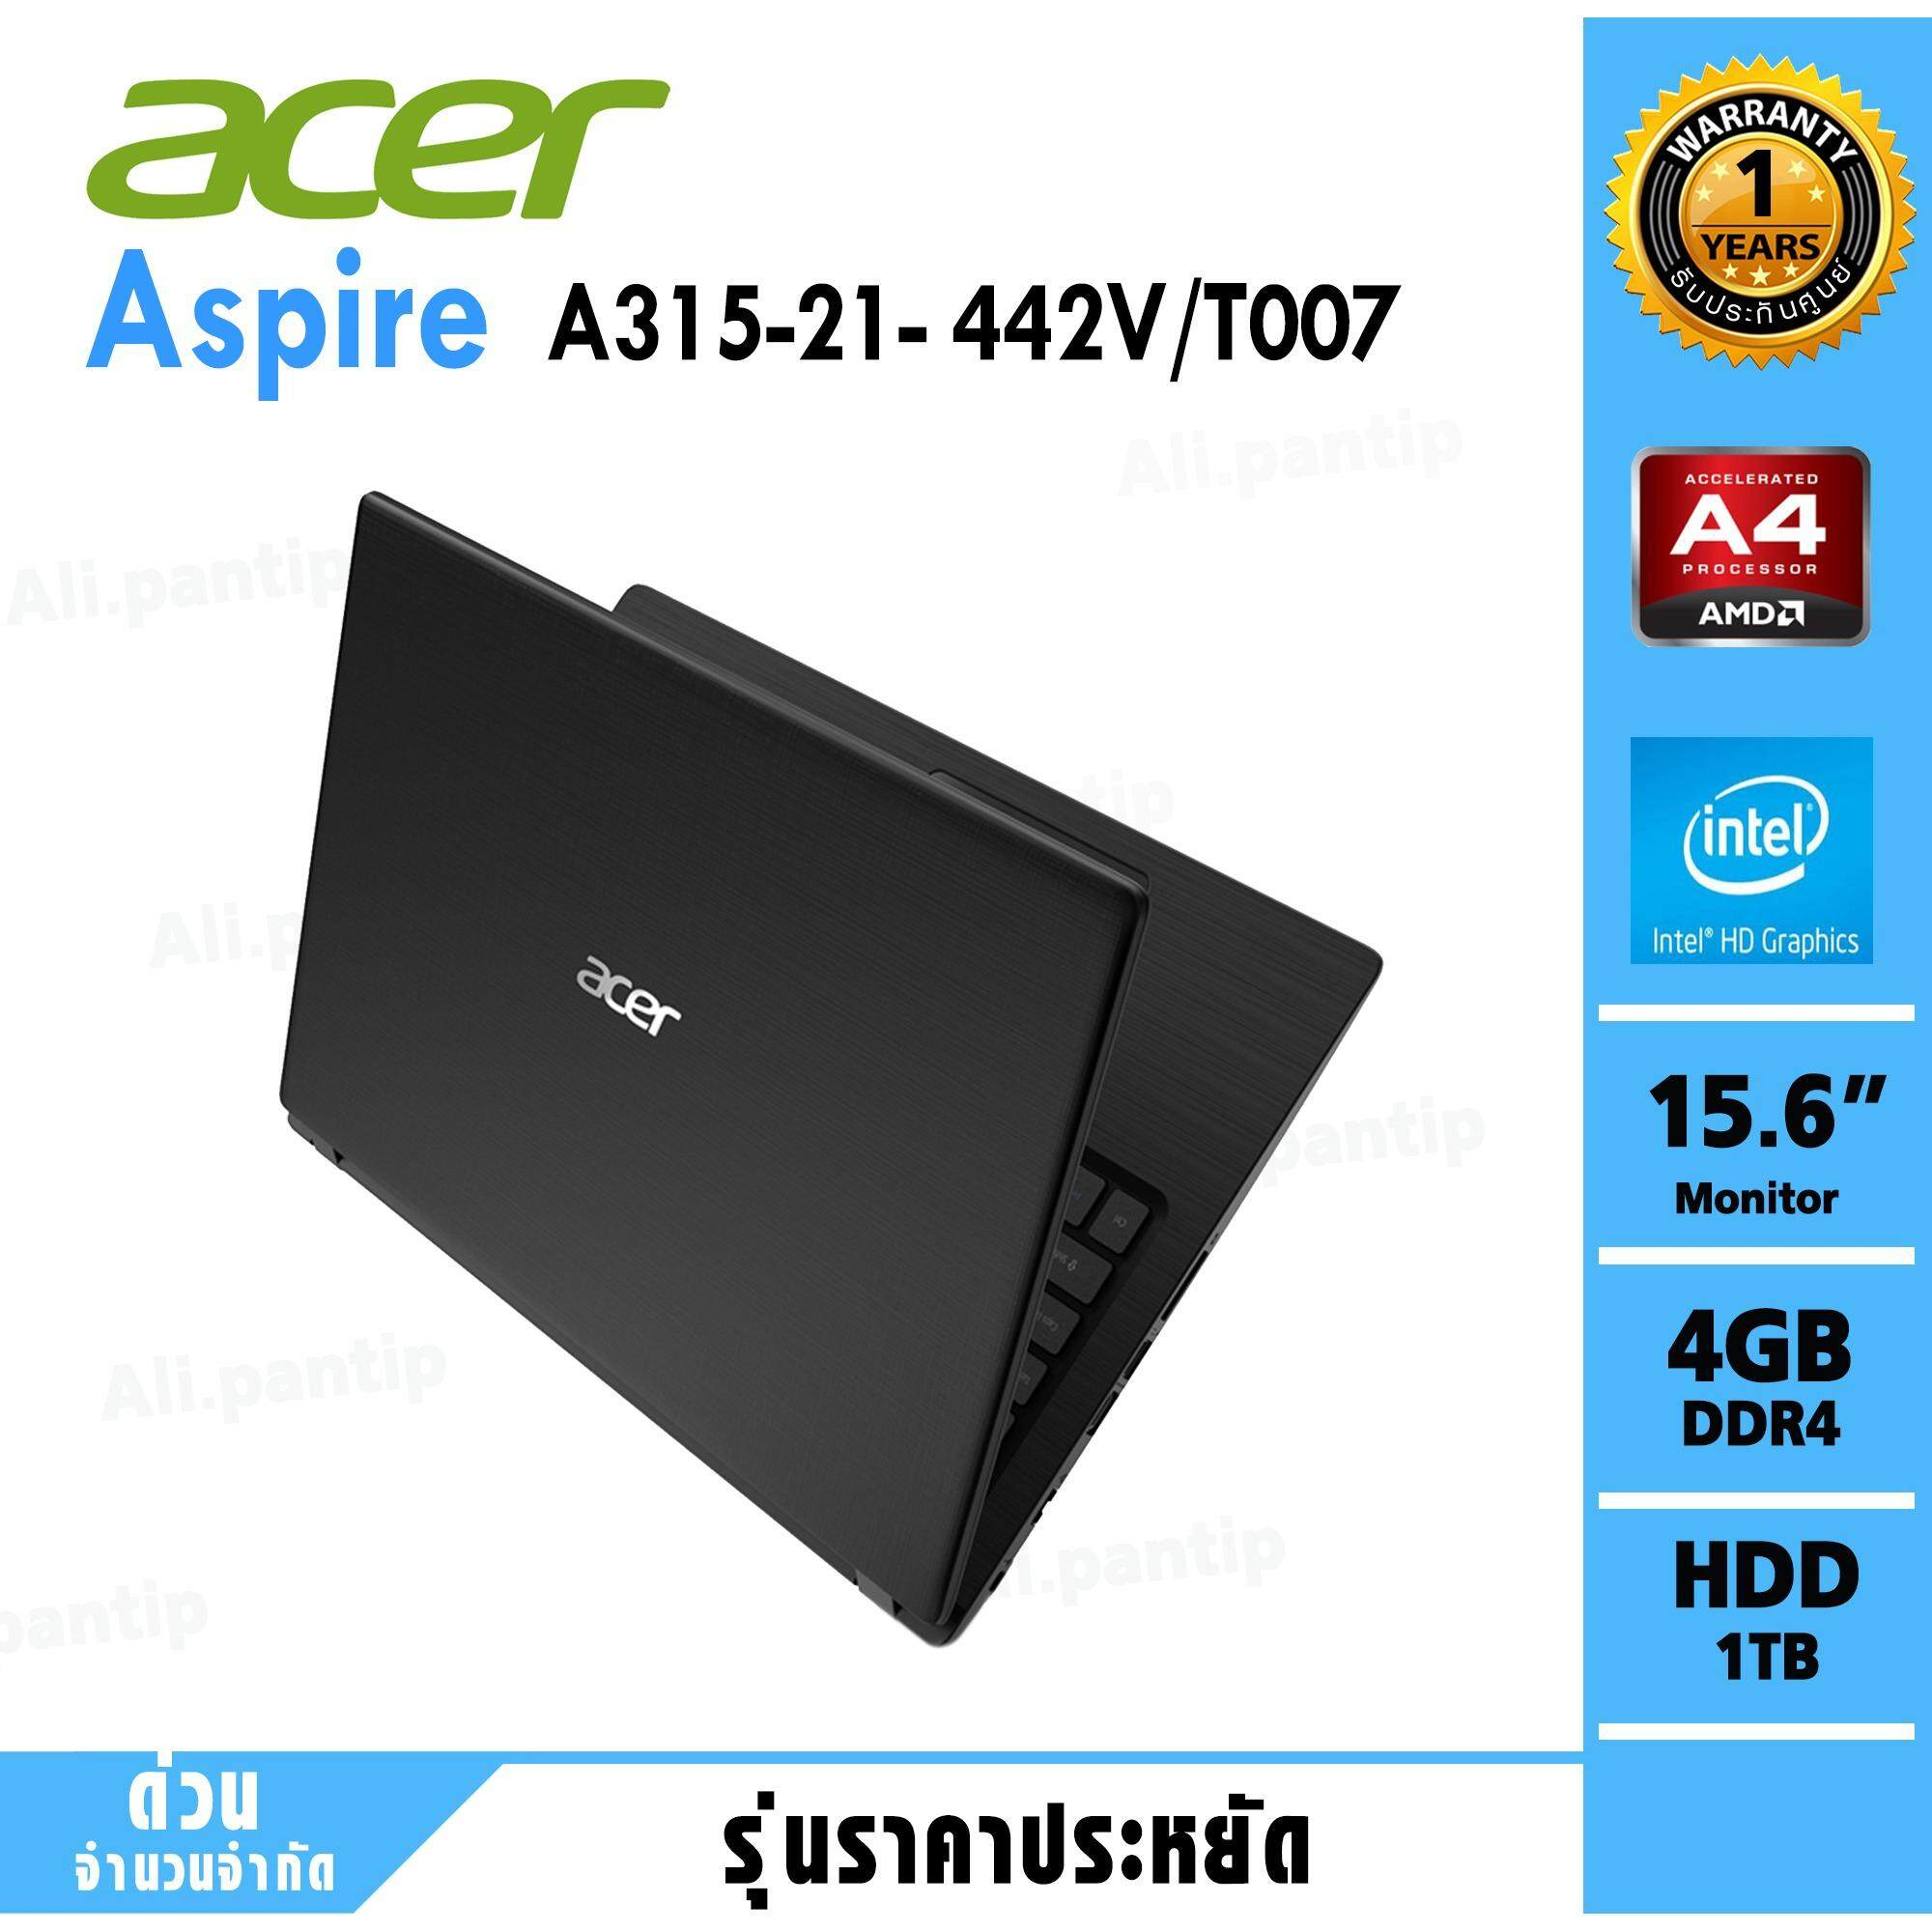 ส่วนลด Notebook Acer Aspire A315 21 442V T007 Black Acer